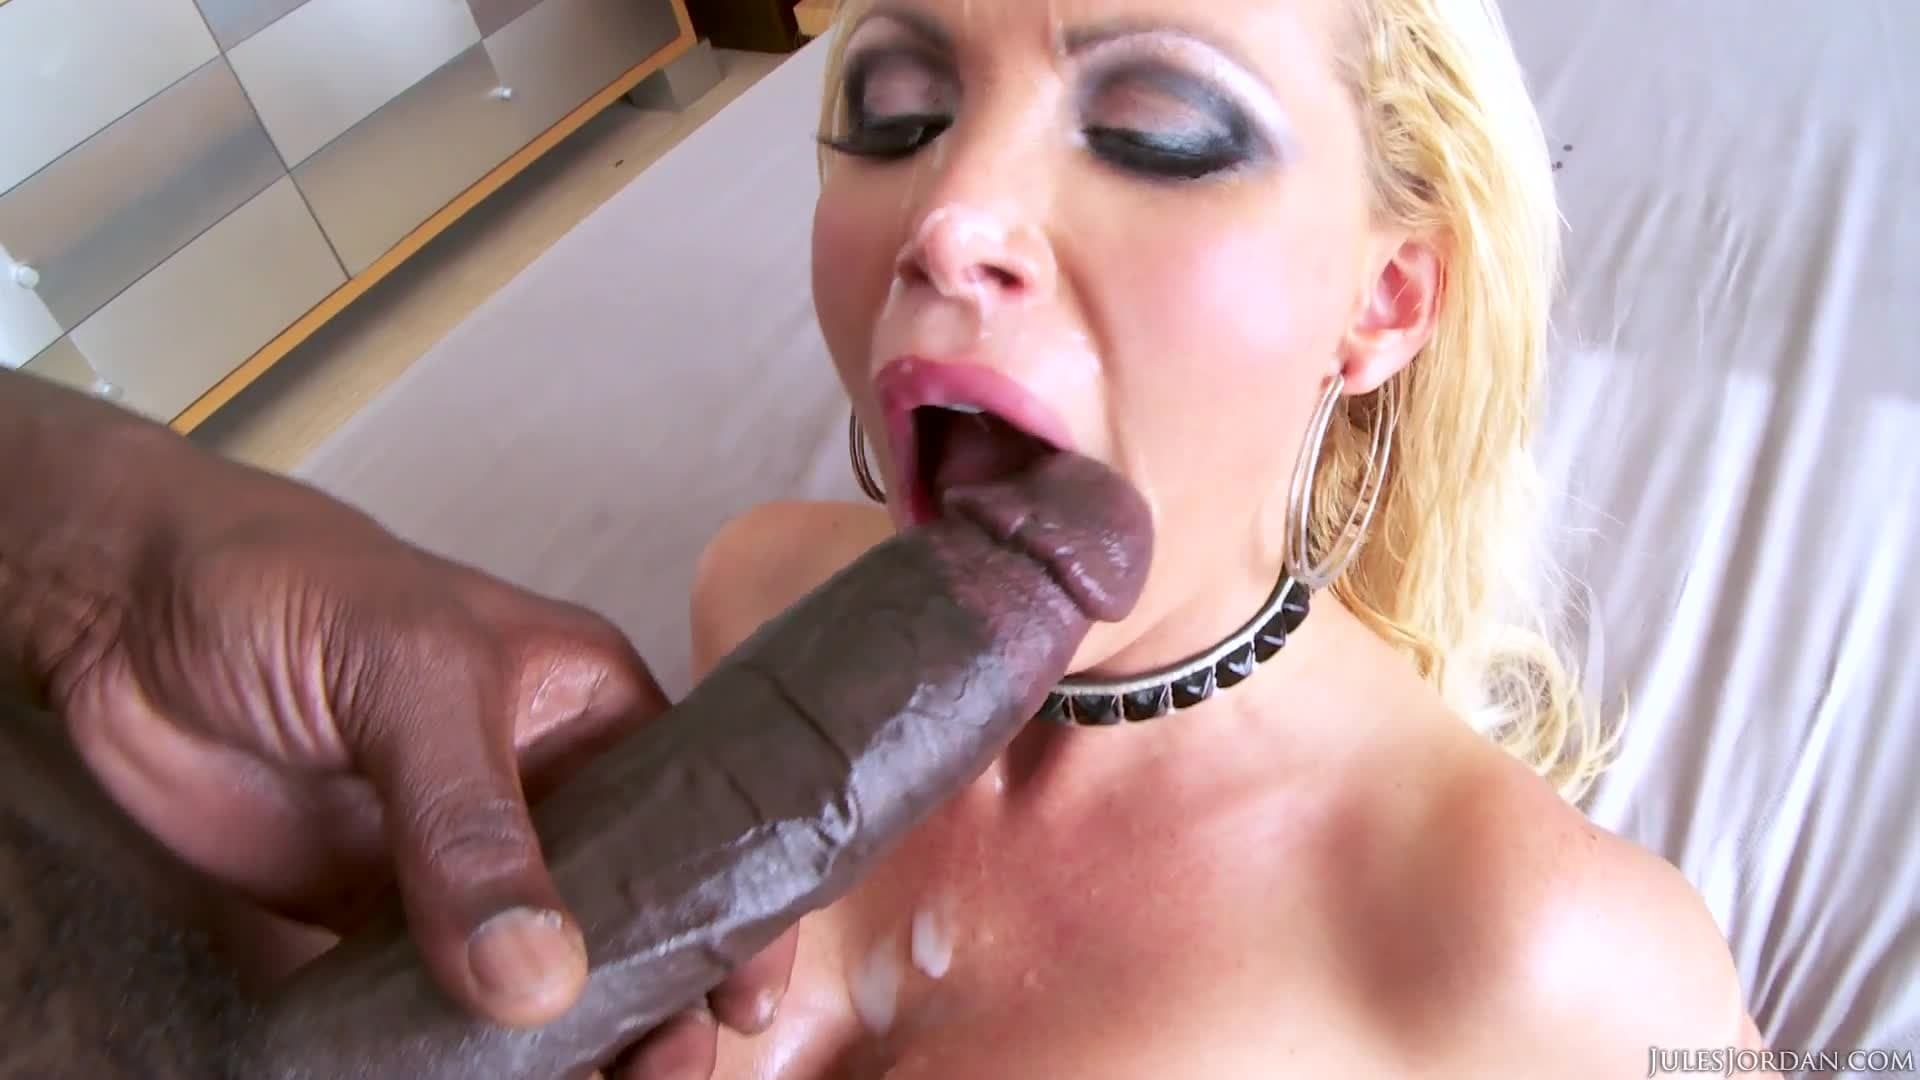 with you definitely young couple fuck blowjob facial cum can consult you